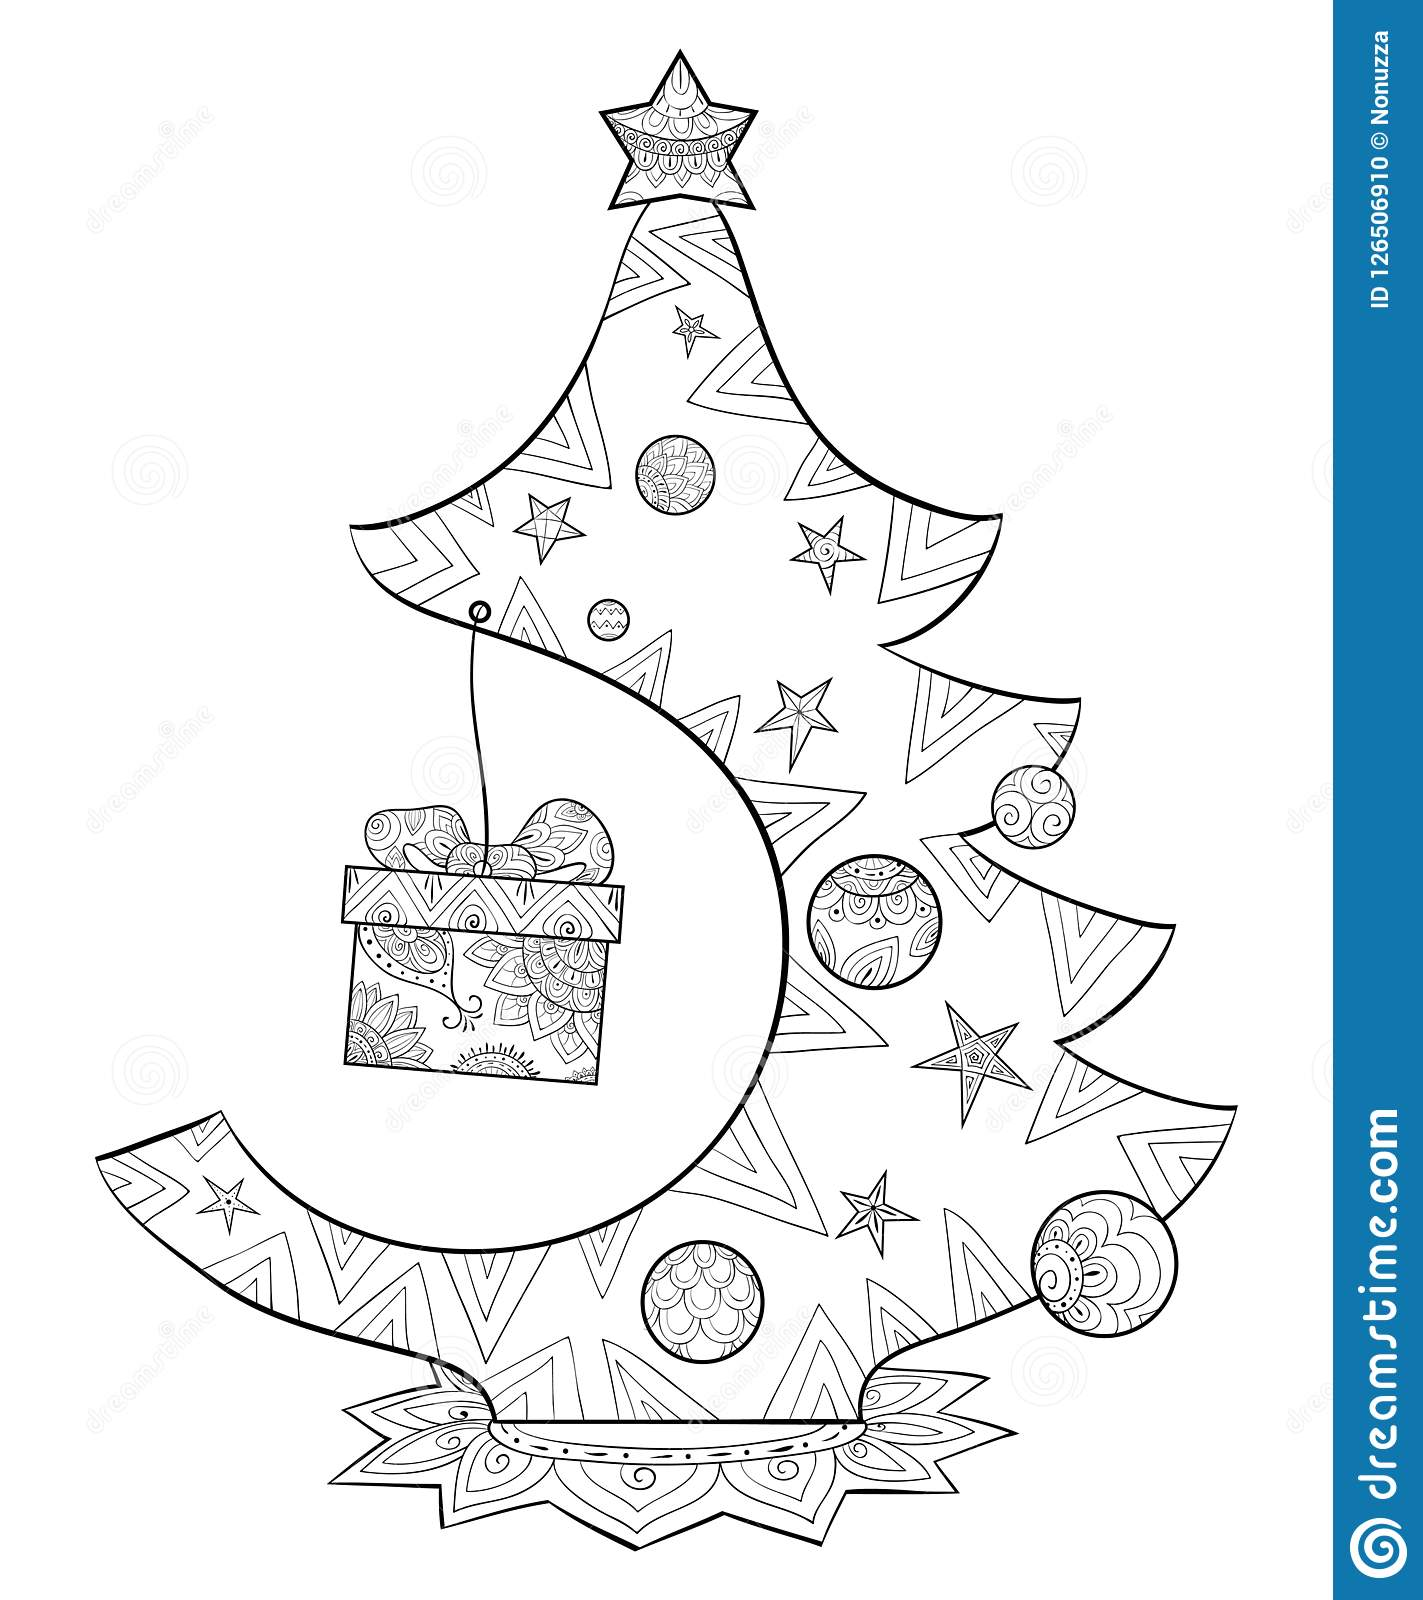 Christmas Koala Coloring Page With A Book For Adults And Children Cute Fir